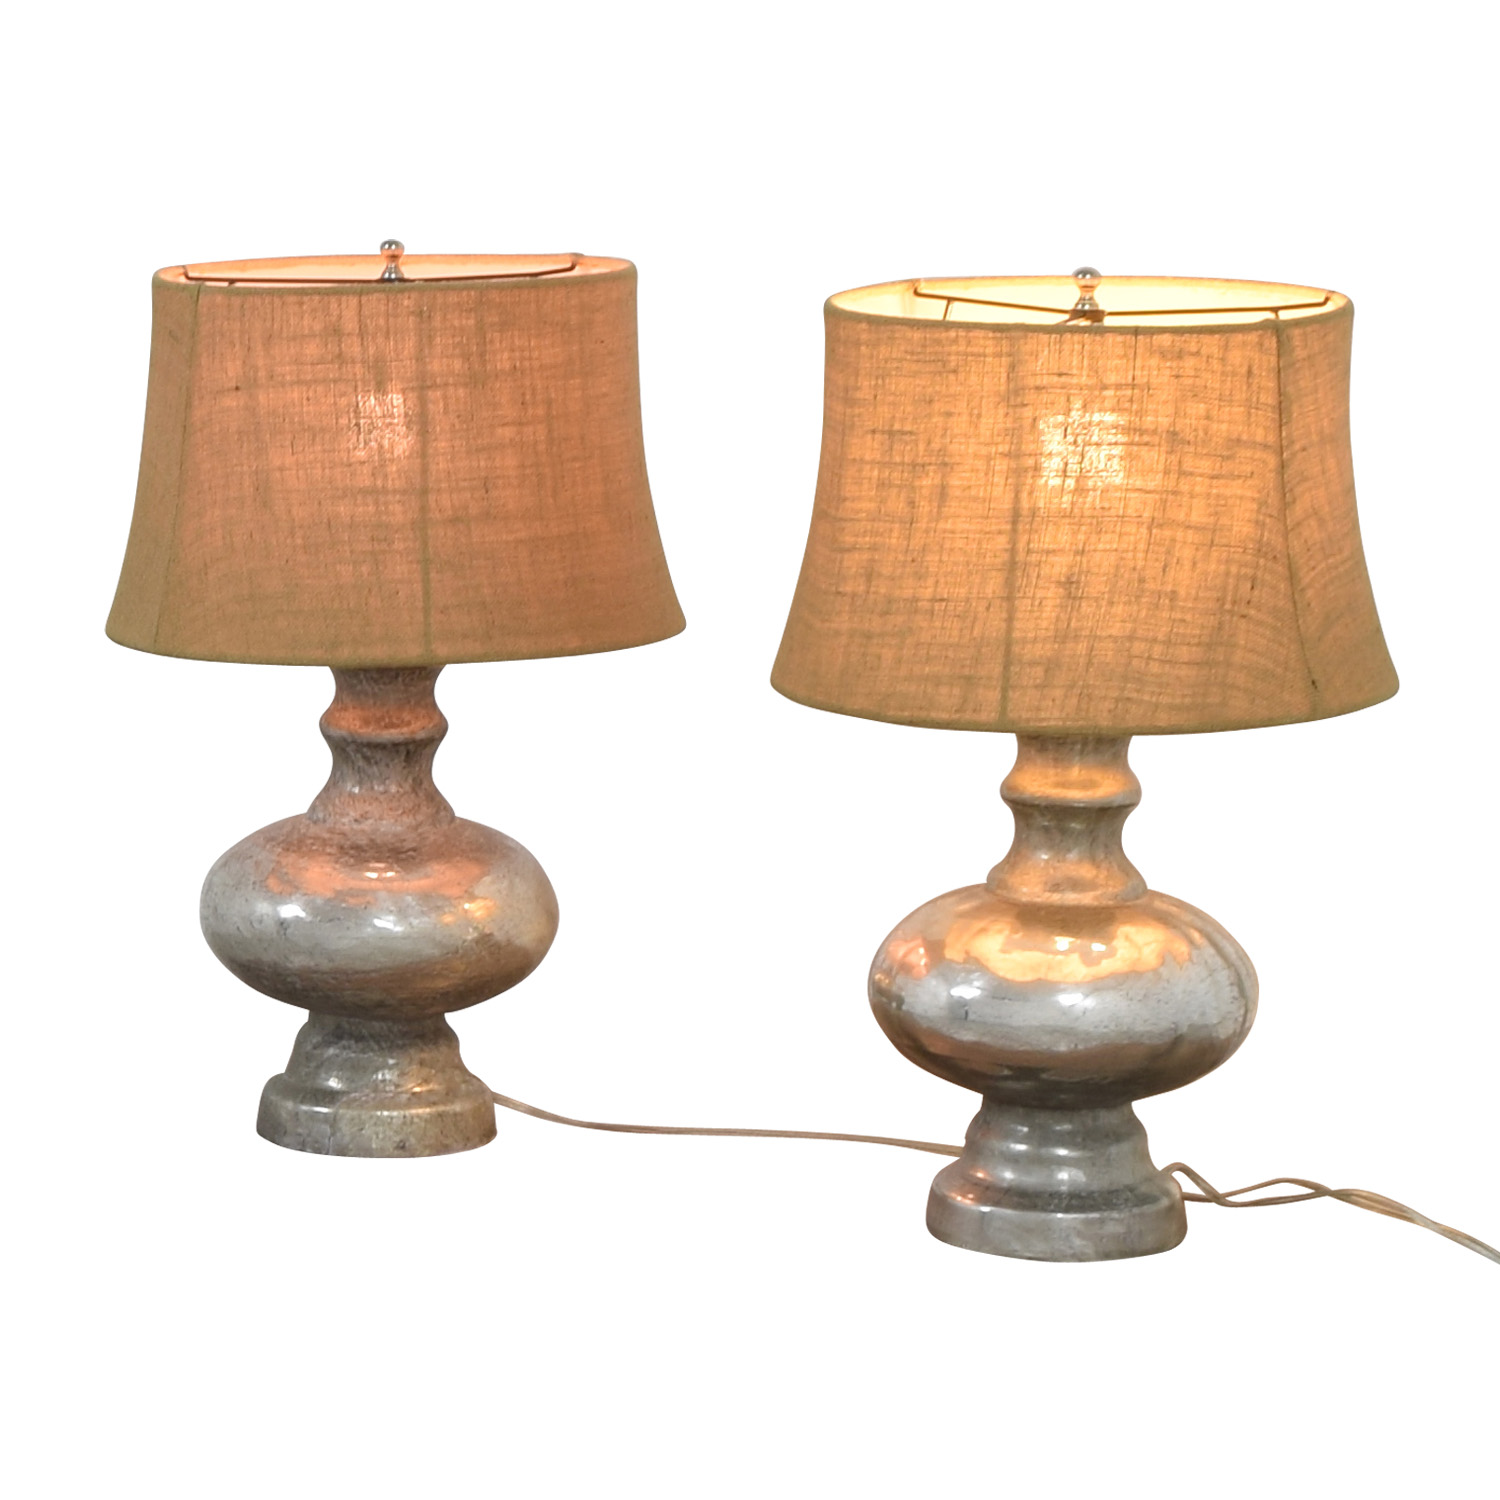 ... Pottery Barn Pottery Barn Antique Mercury Glass Table Lamps Coupon ...